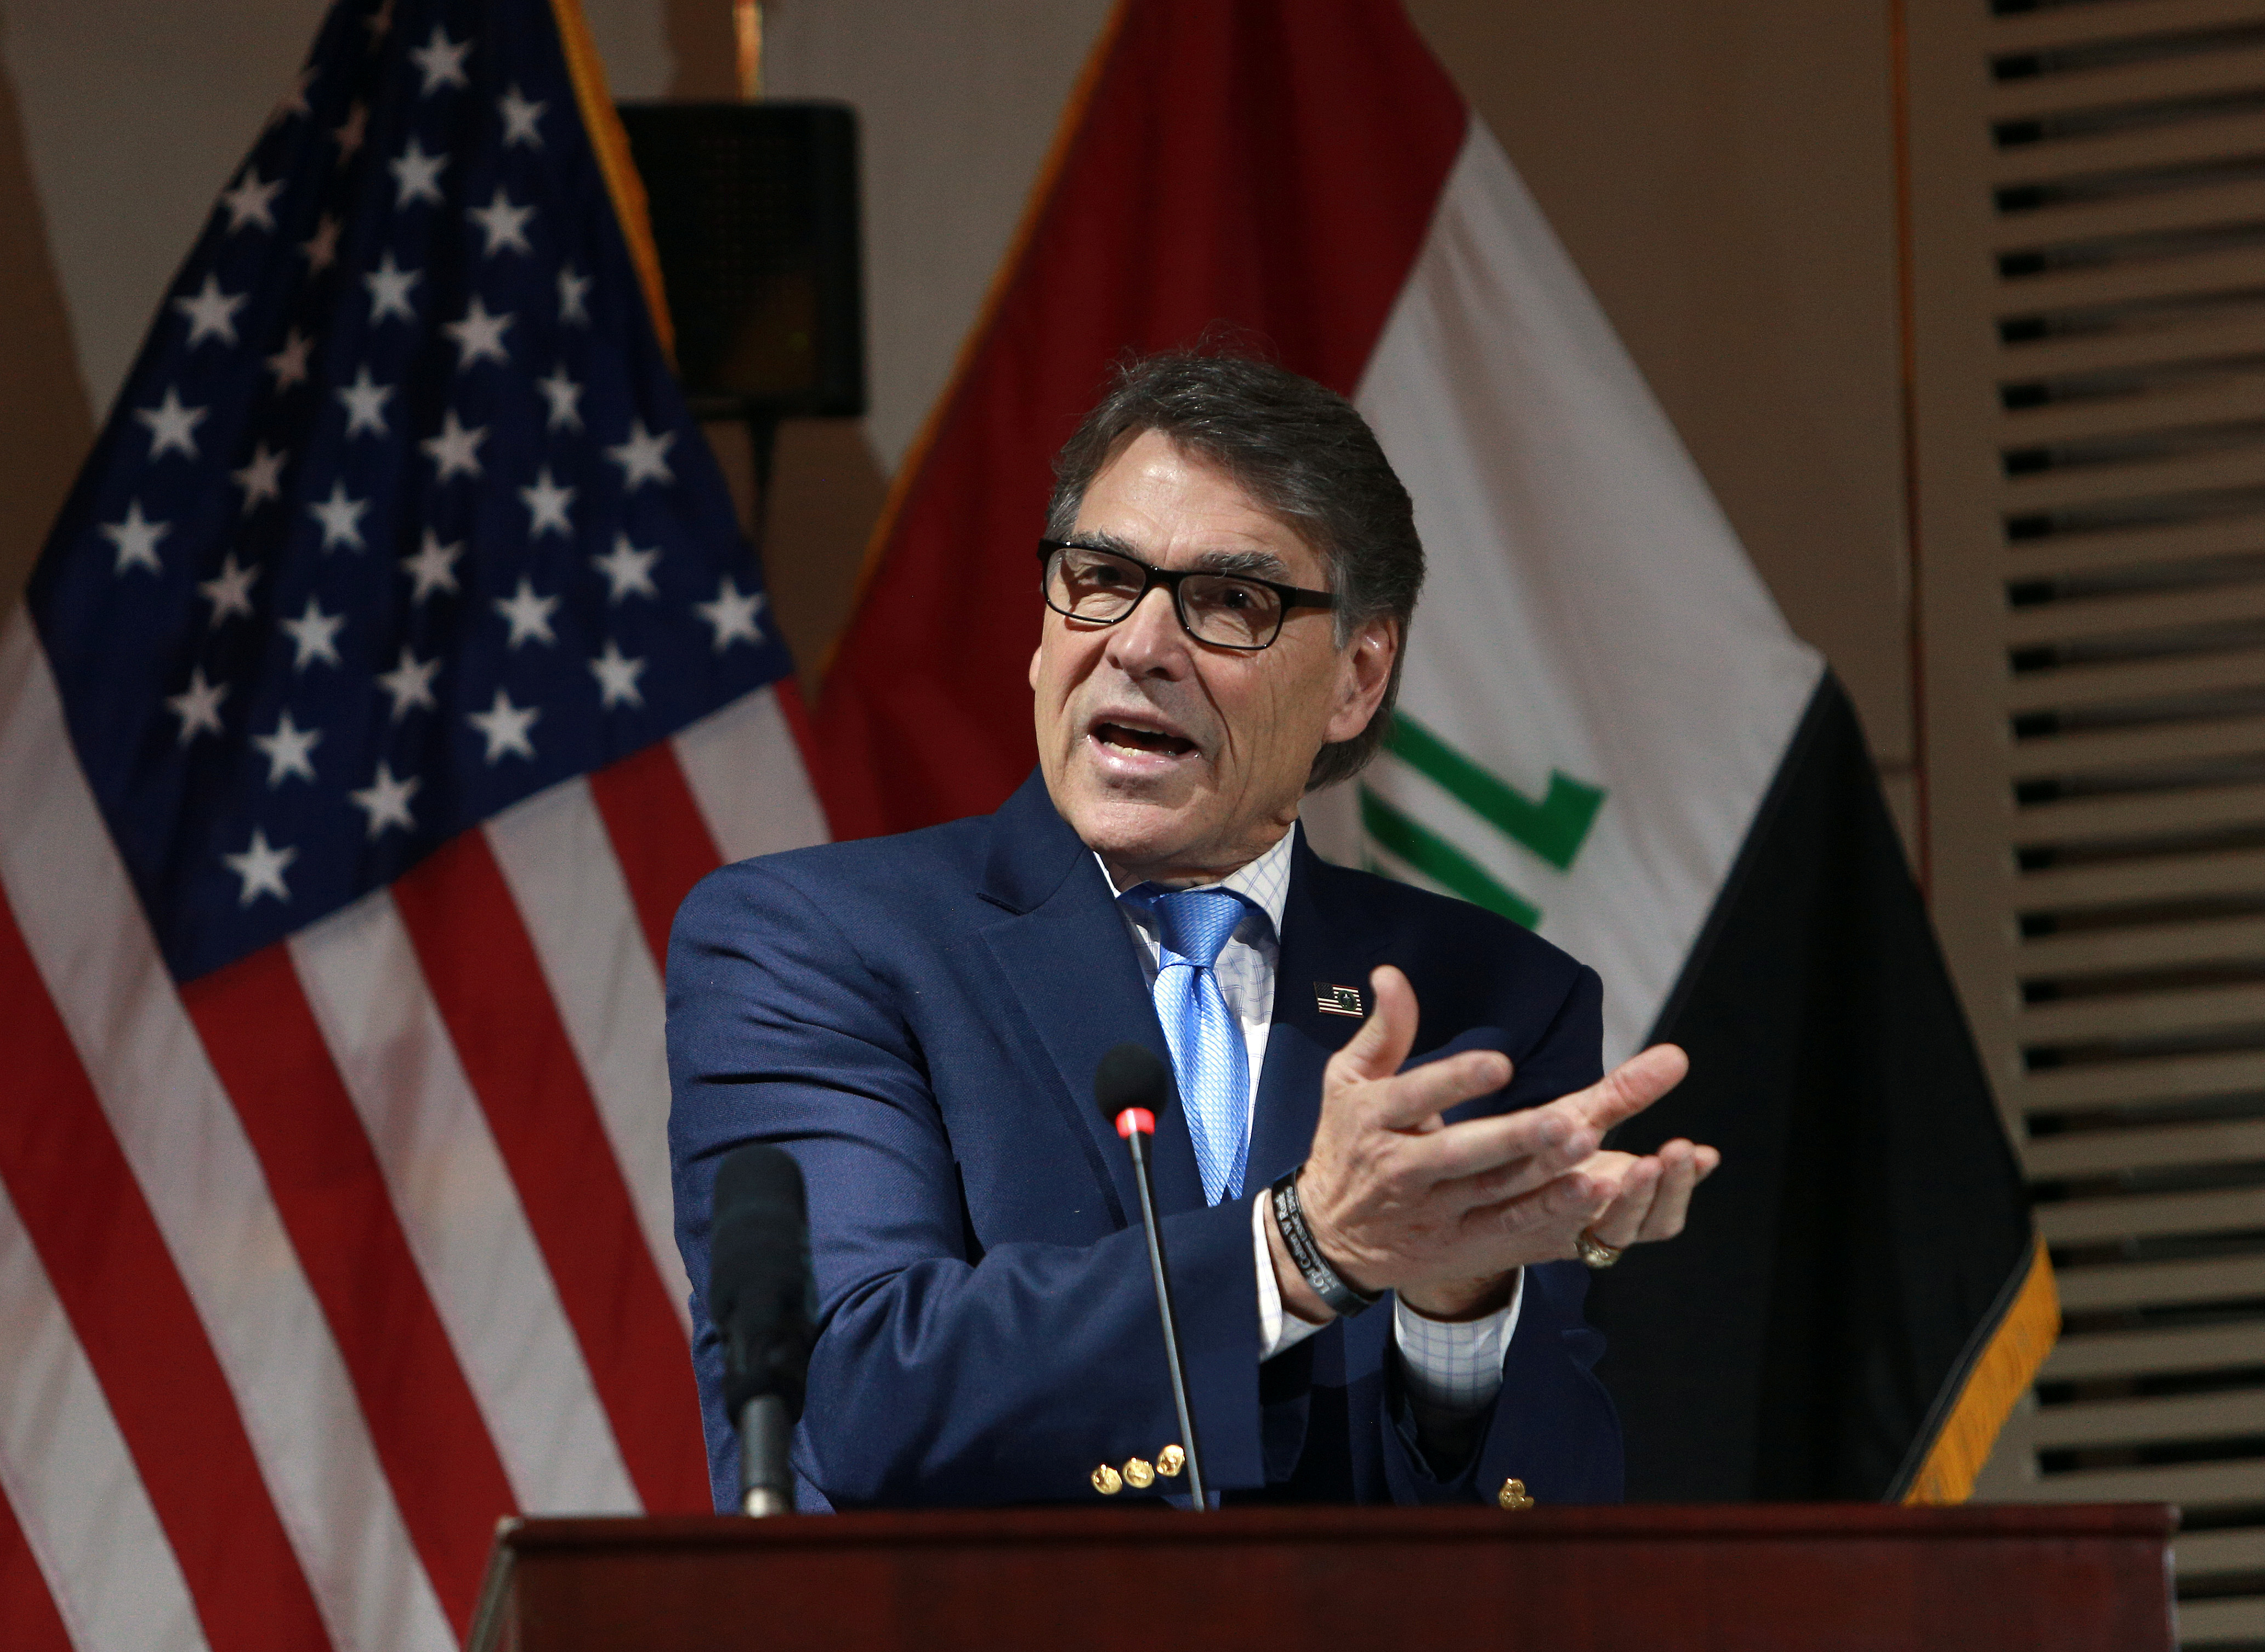 U.S. Energy Secretary Rick Perry gestures during a press conference in Baghdad